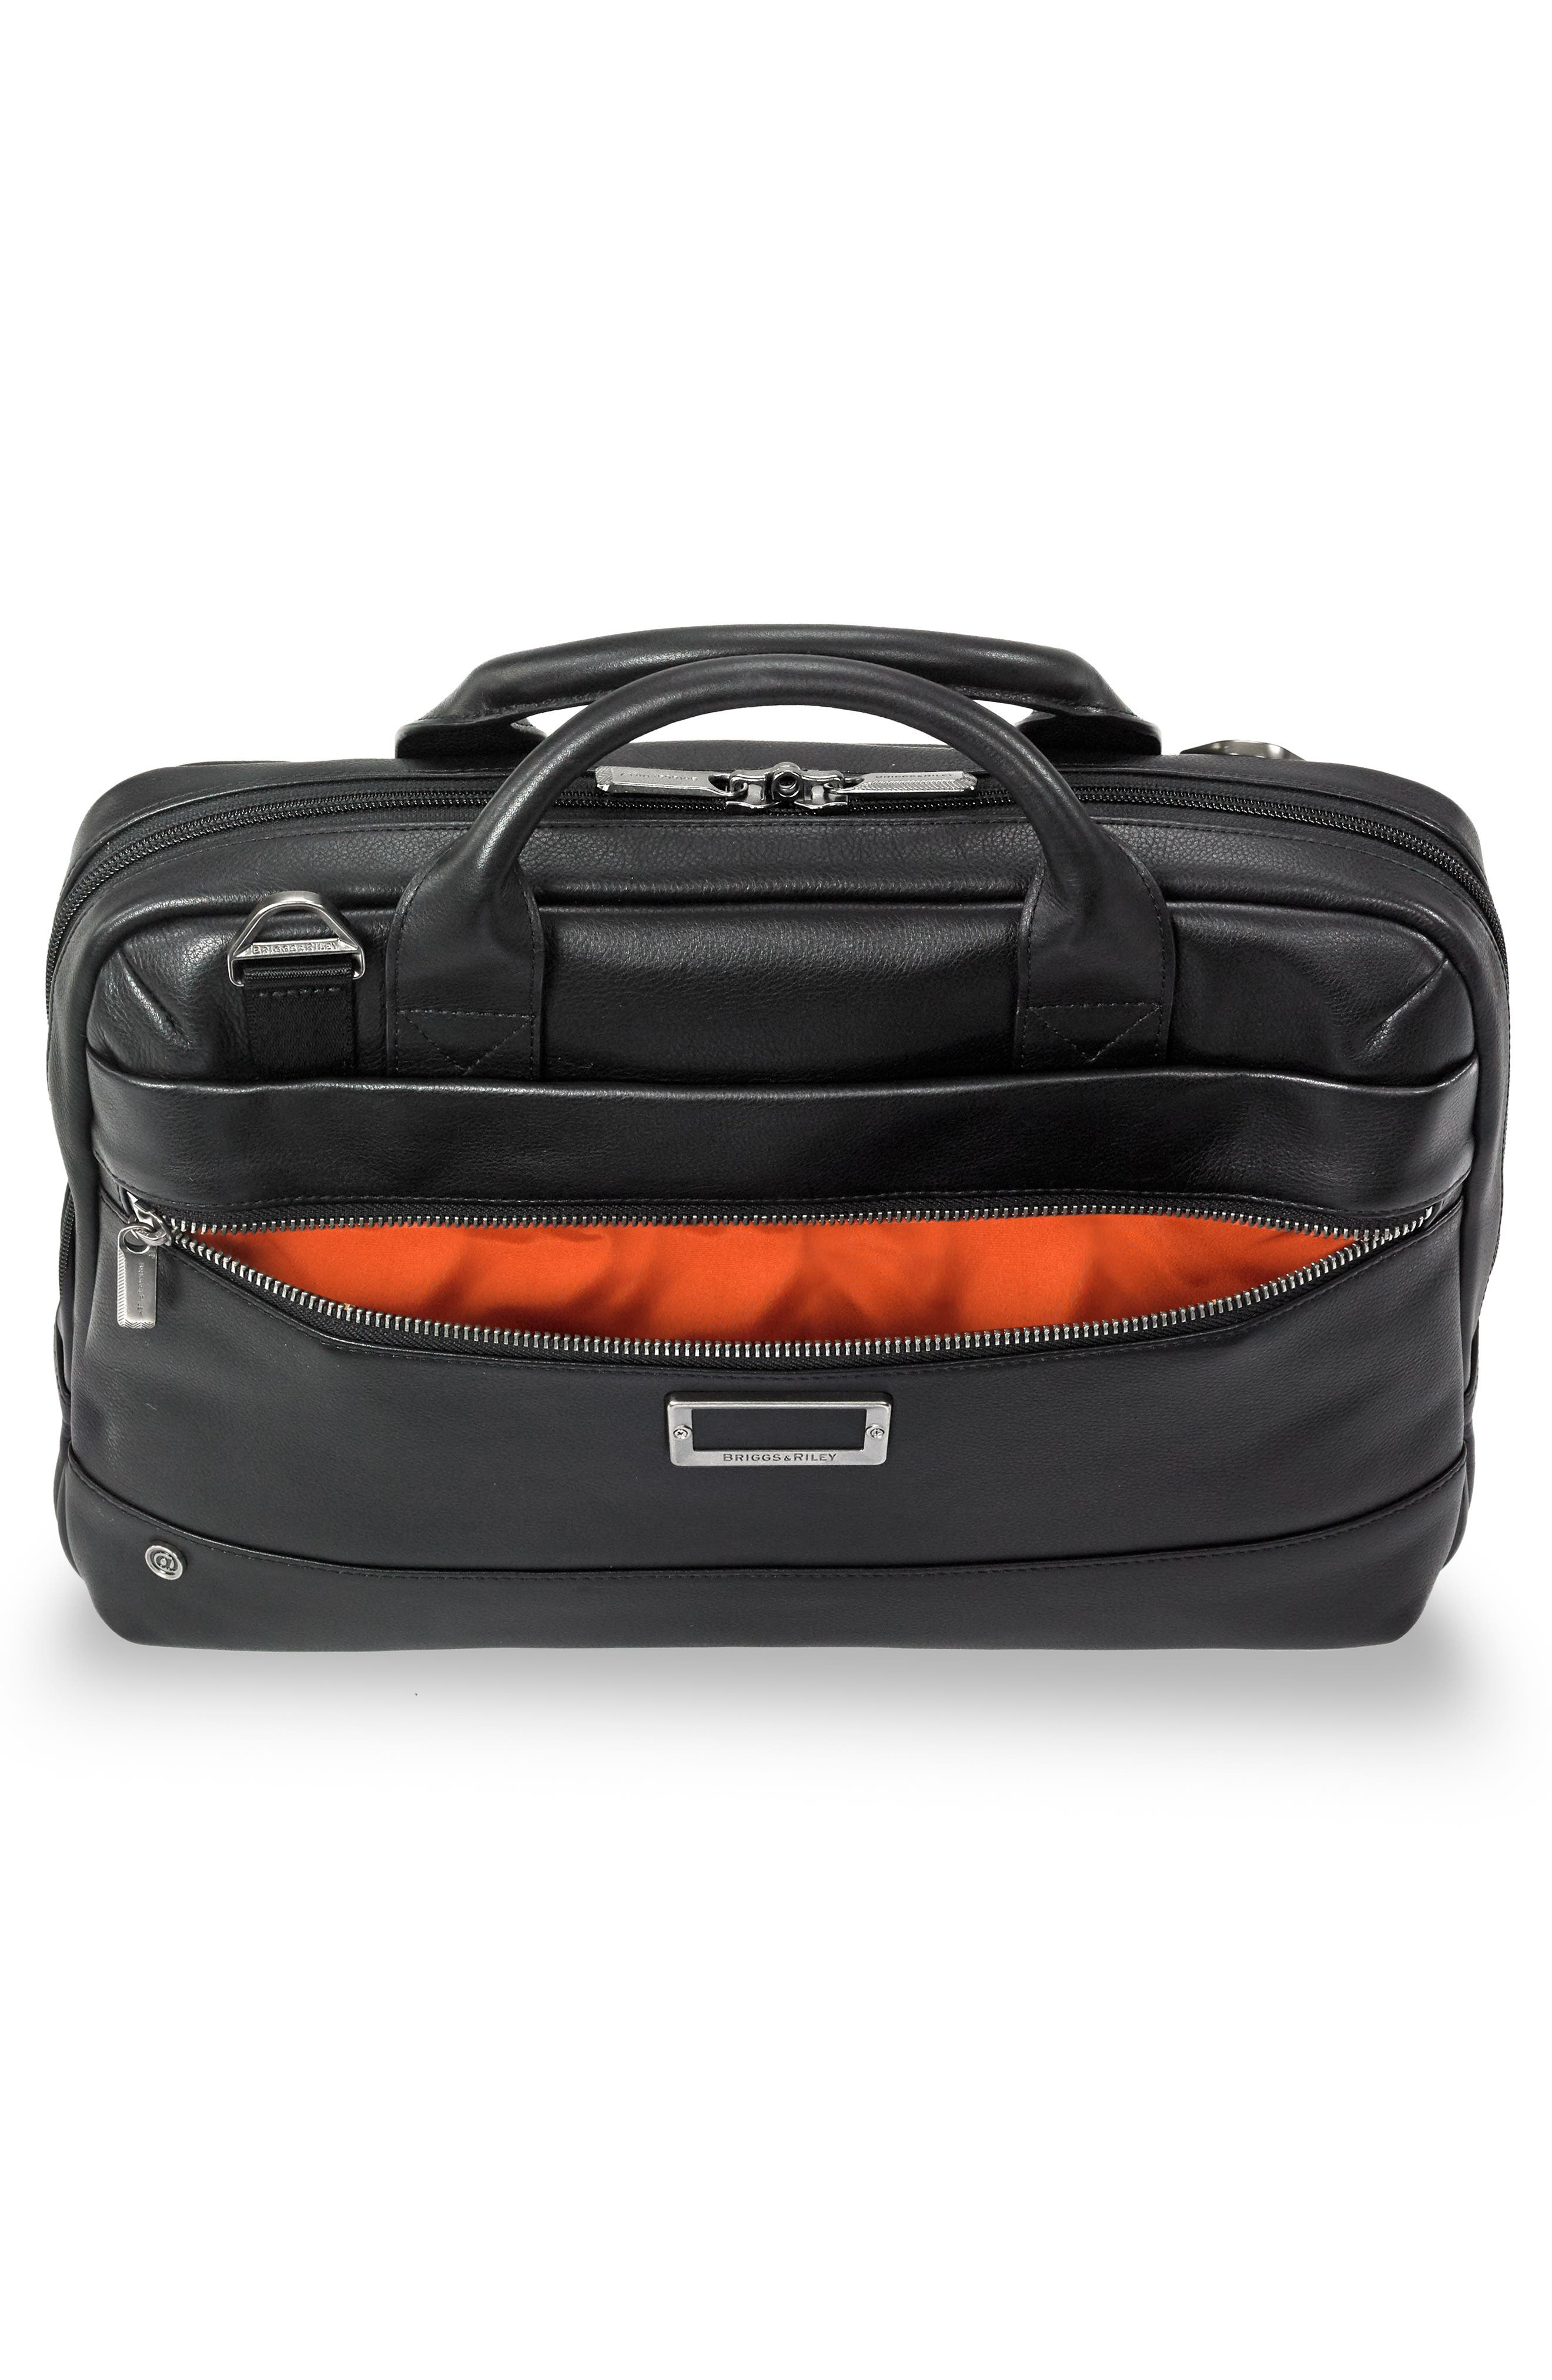 BRIGGS & RILEY,                             @work Slim Leather Laptop Briefcase,                             Alternate thumbnail 7, color,                             BLACK